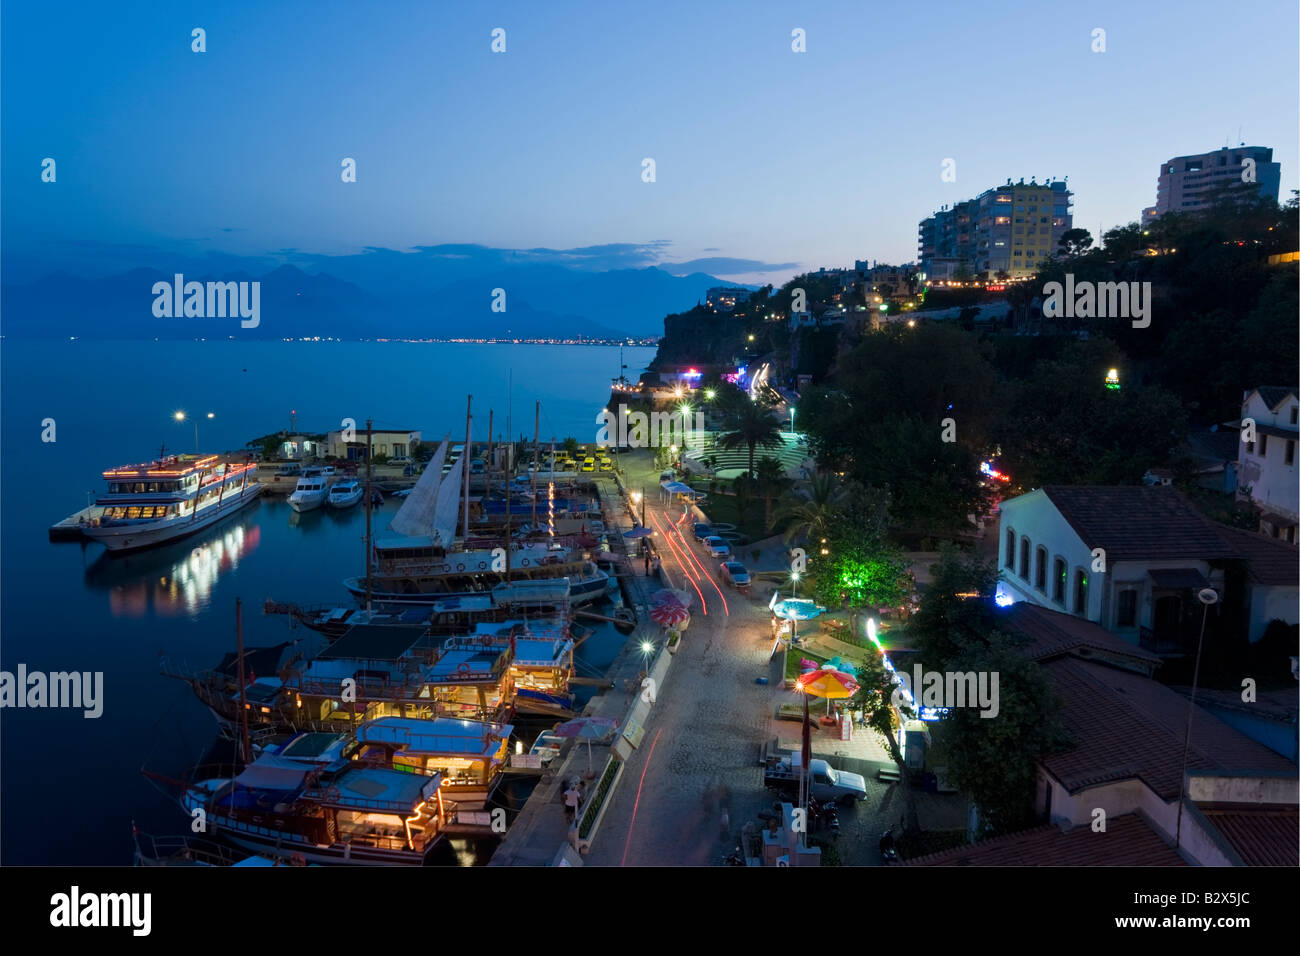 Elevated view at dusk of the Marina and Roman Harbour in Kaleici, Antalya, Anatolia, Turkey, Asia Minor, Asia - Stock Image